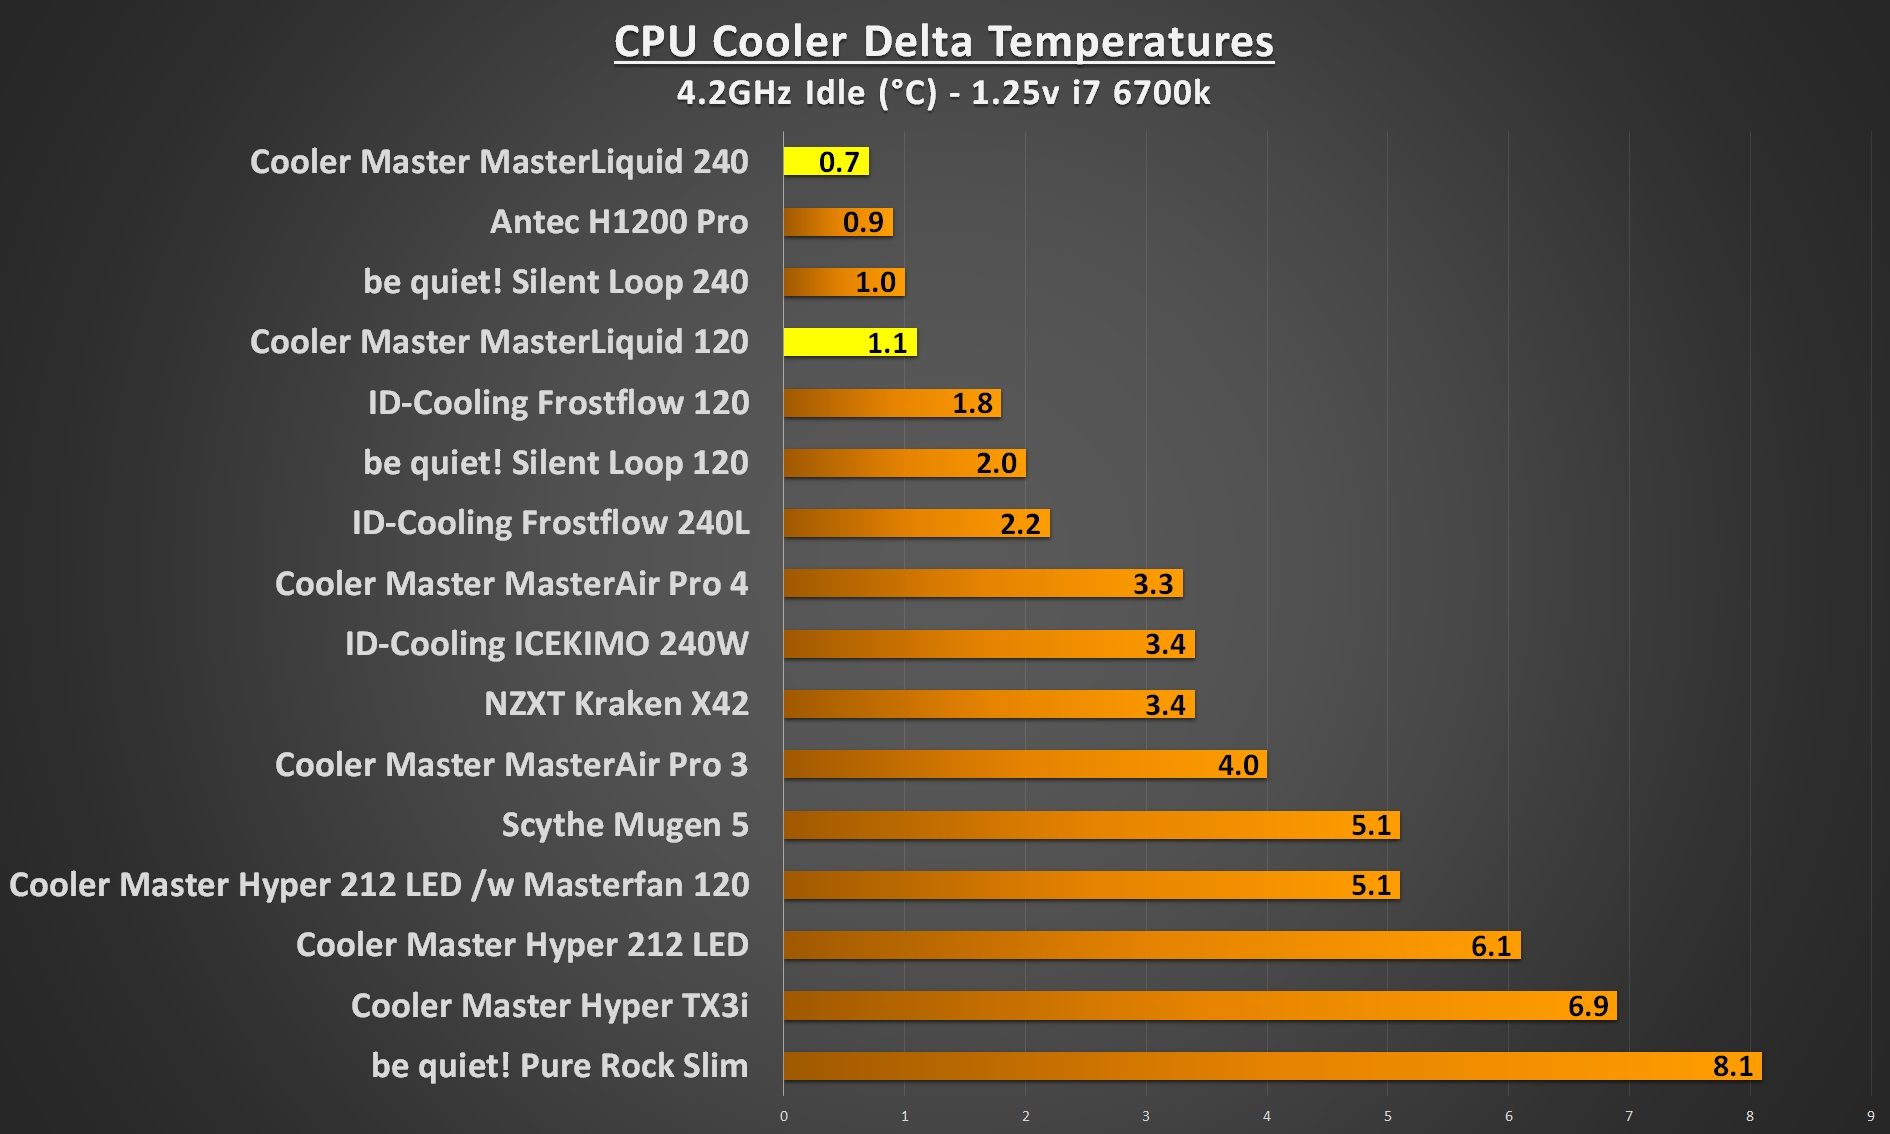 cooler master masterliquid 4.2Ghz idle